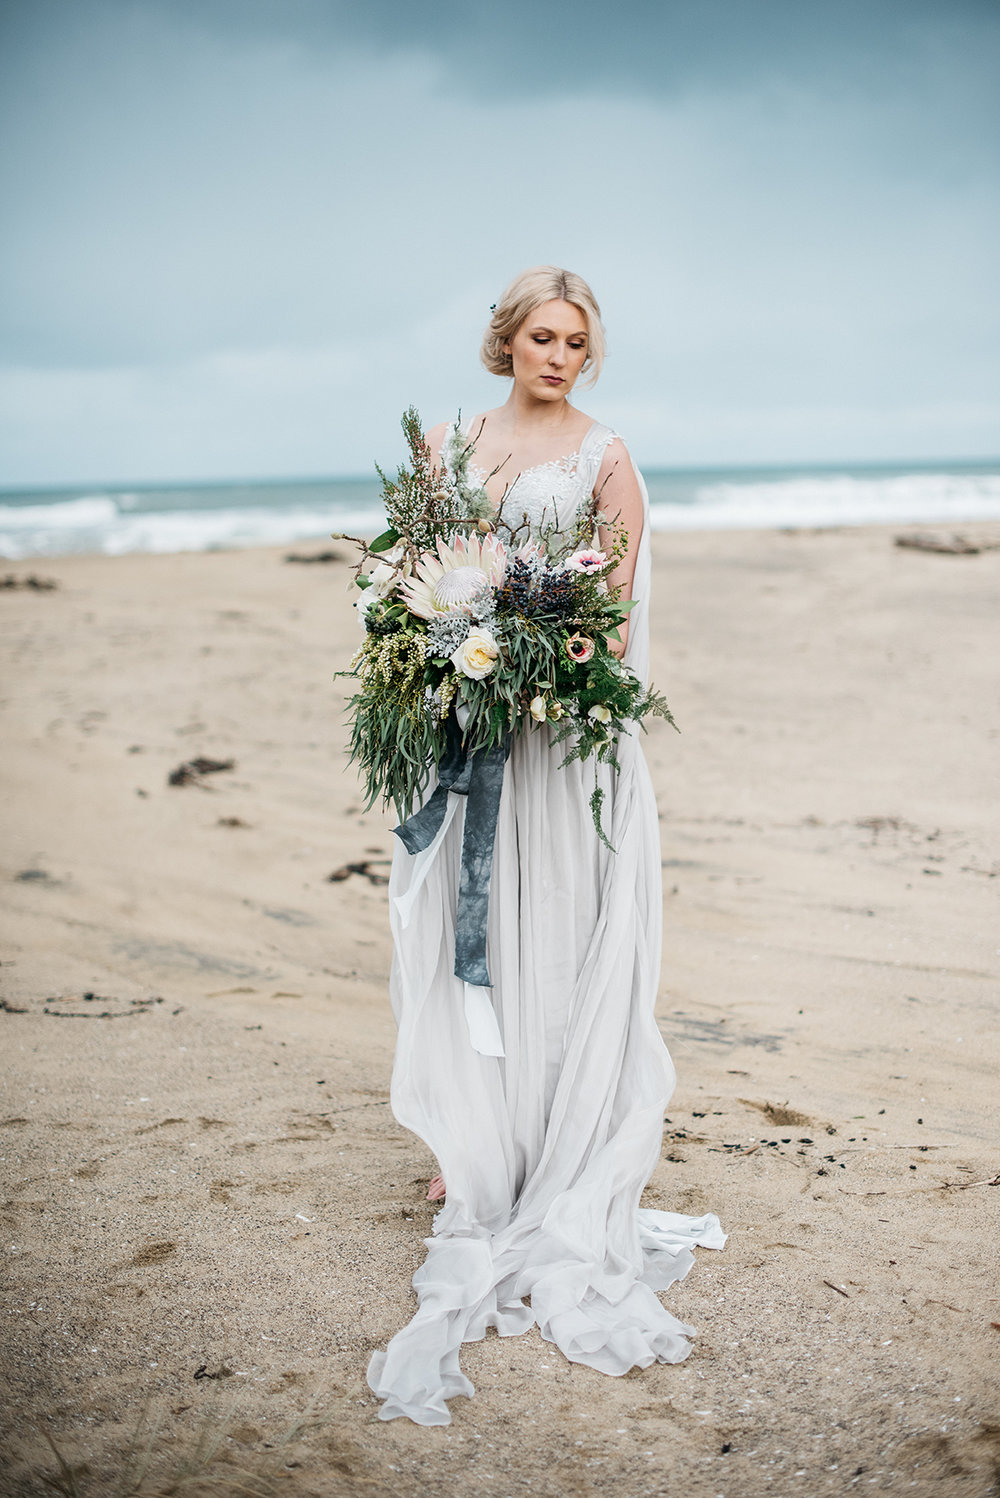 Meredith Lord Photography